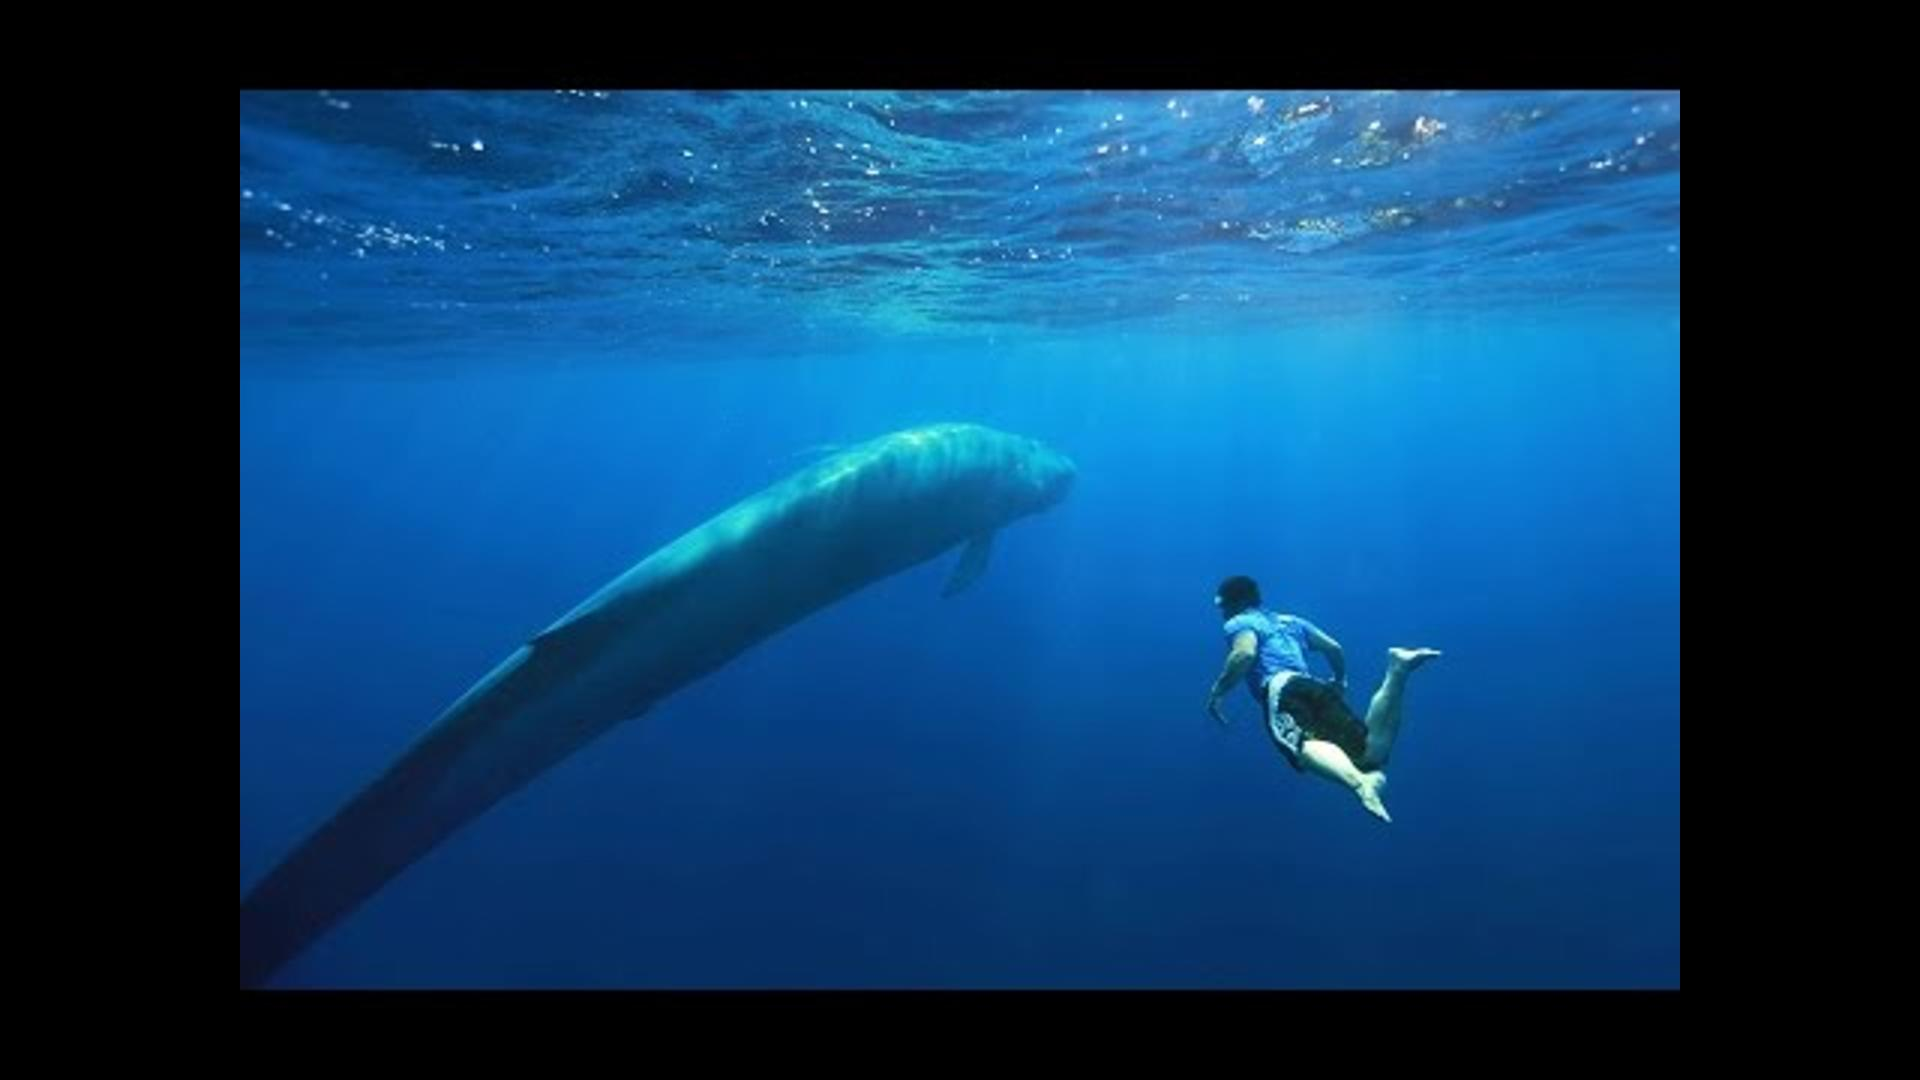 Stunning photo shows diver's close encounter with 100-foot blue whale